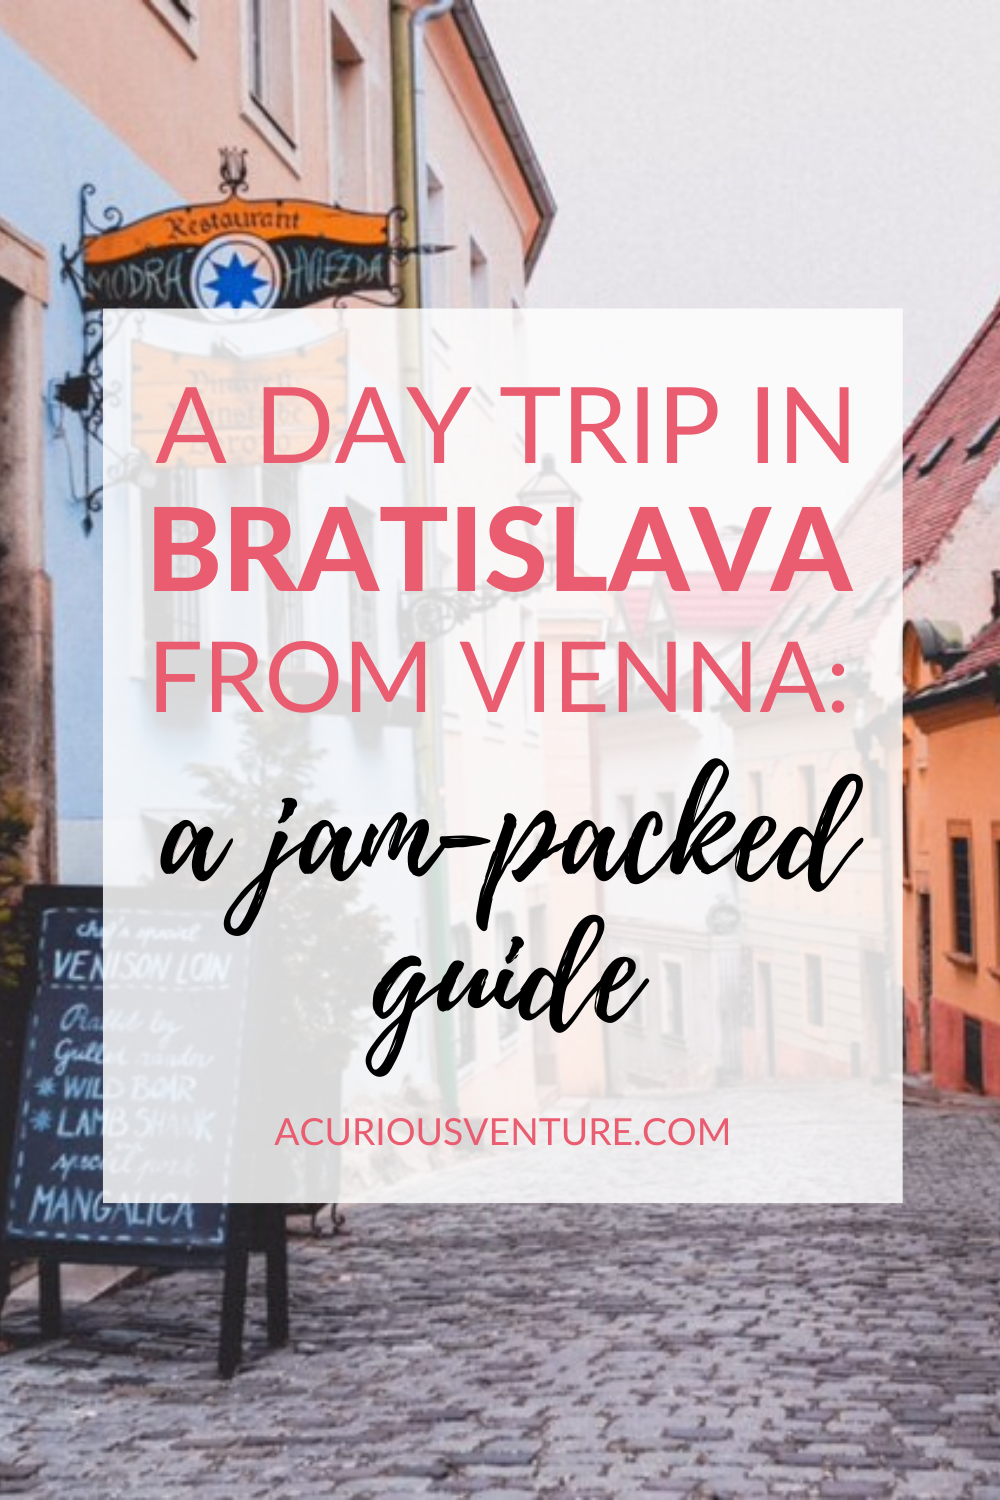 A Day Trip In Bratislava From Vienna Guide